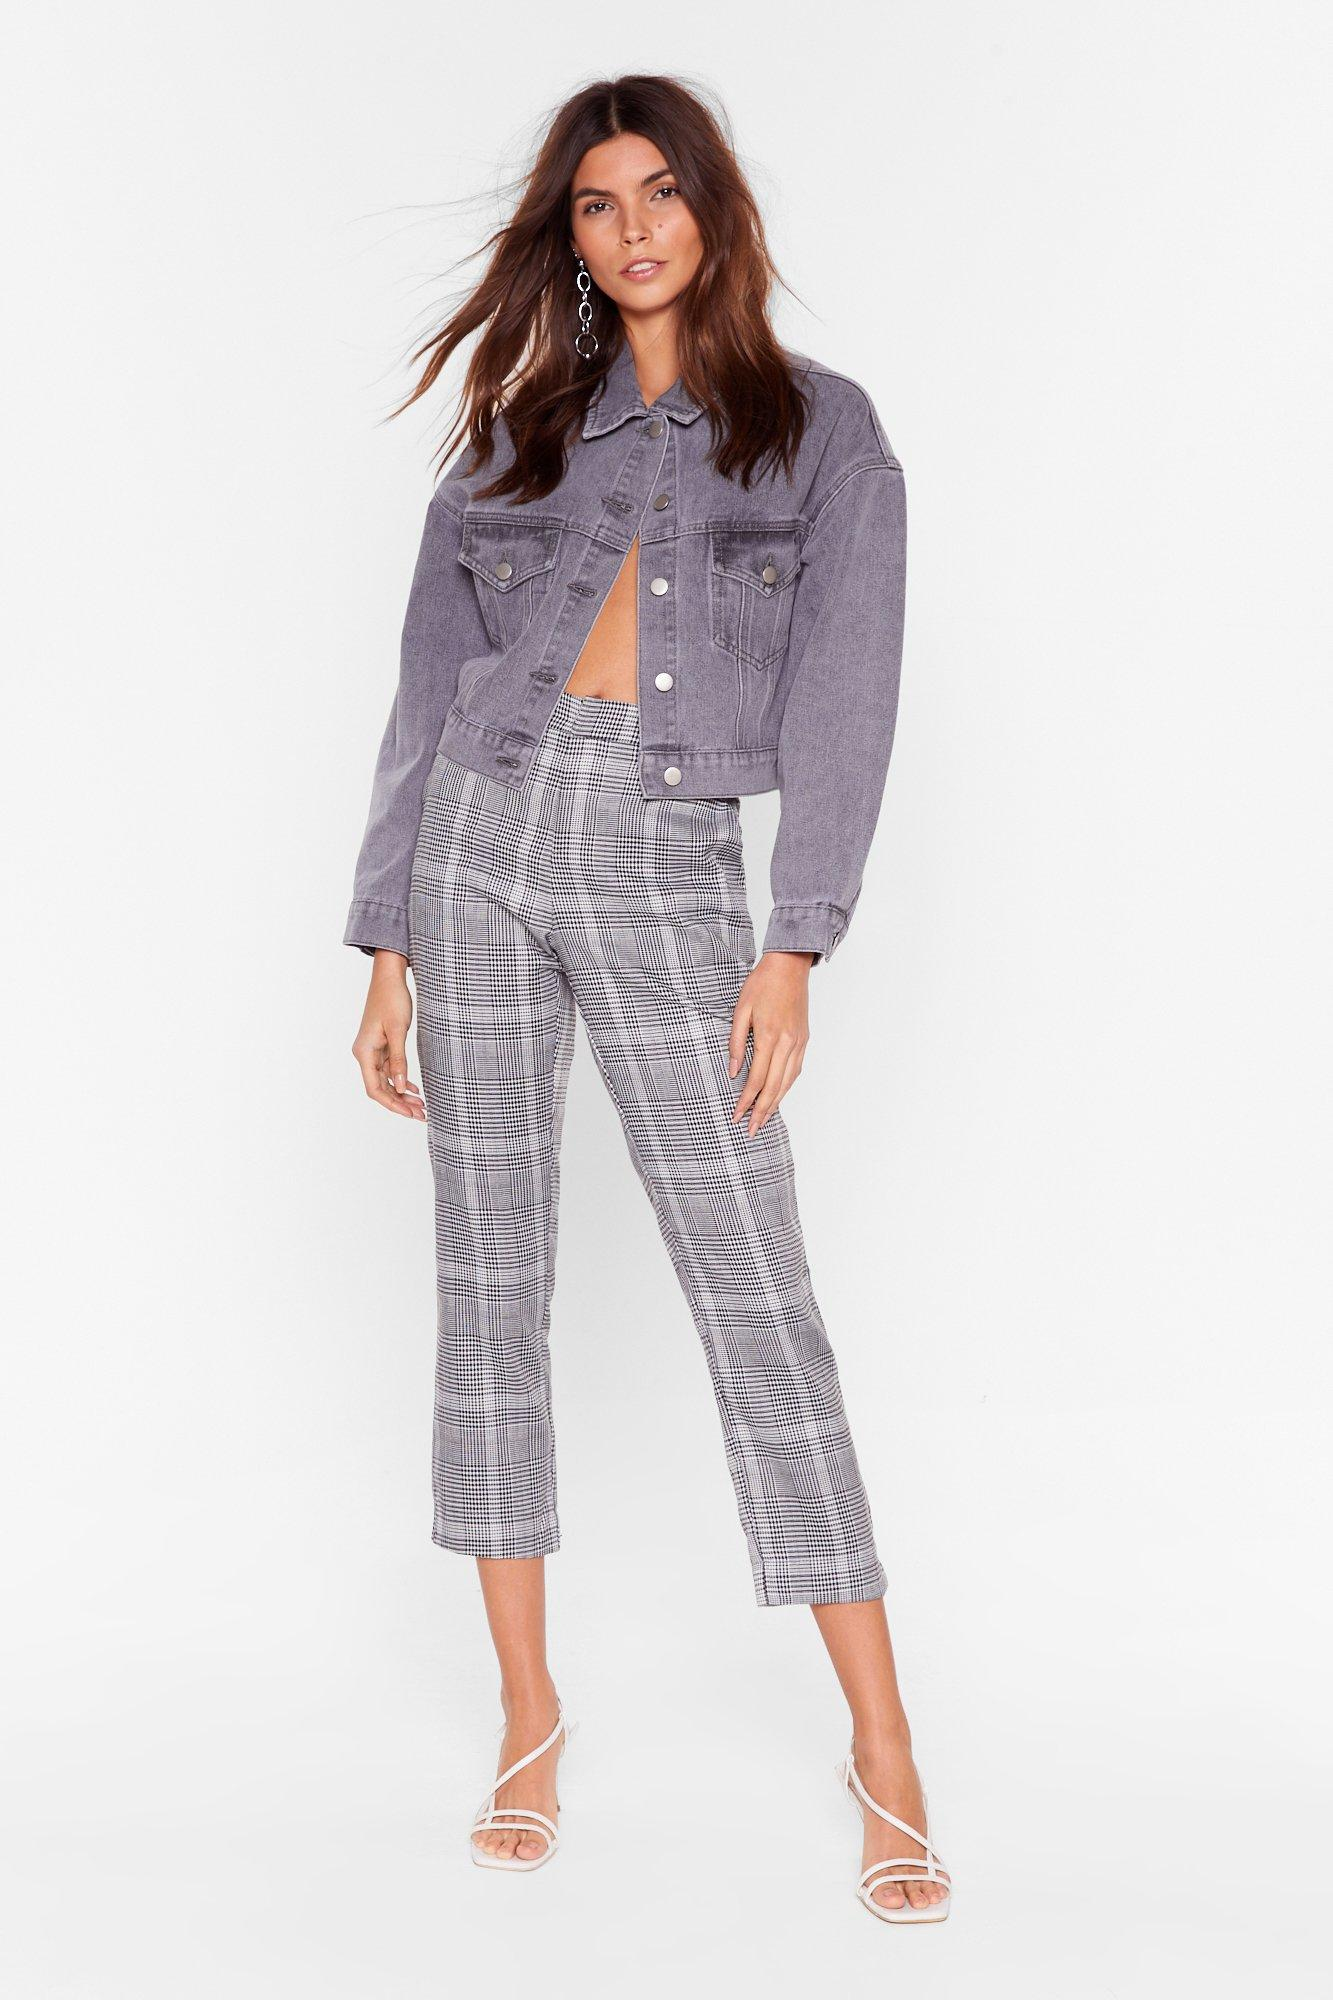 Image of One Check at a Time Tapered Pants